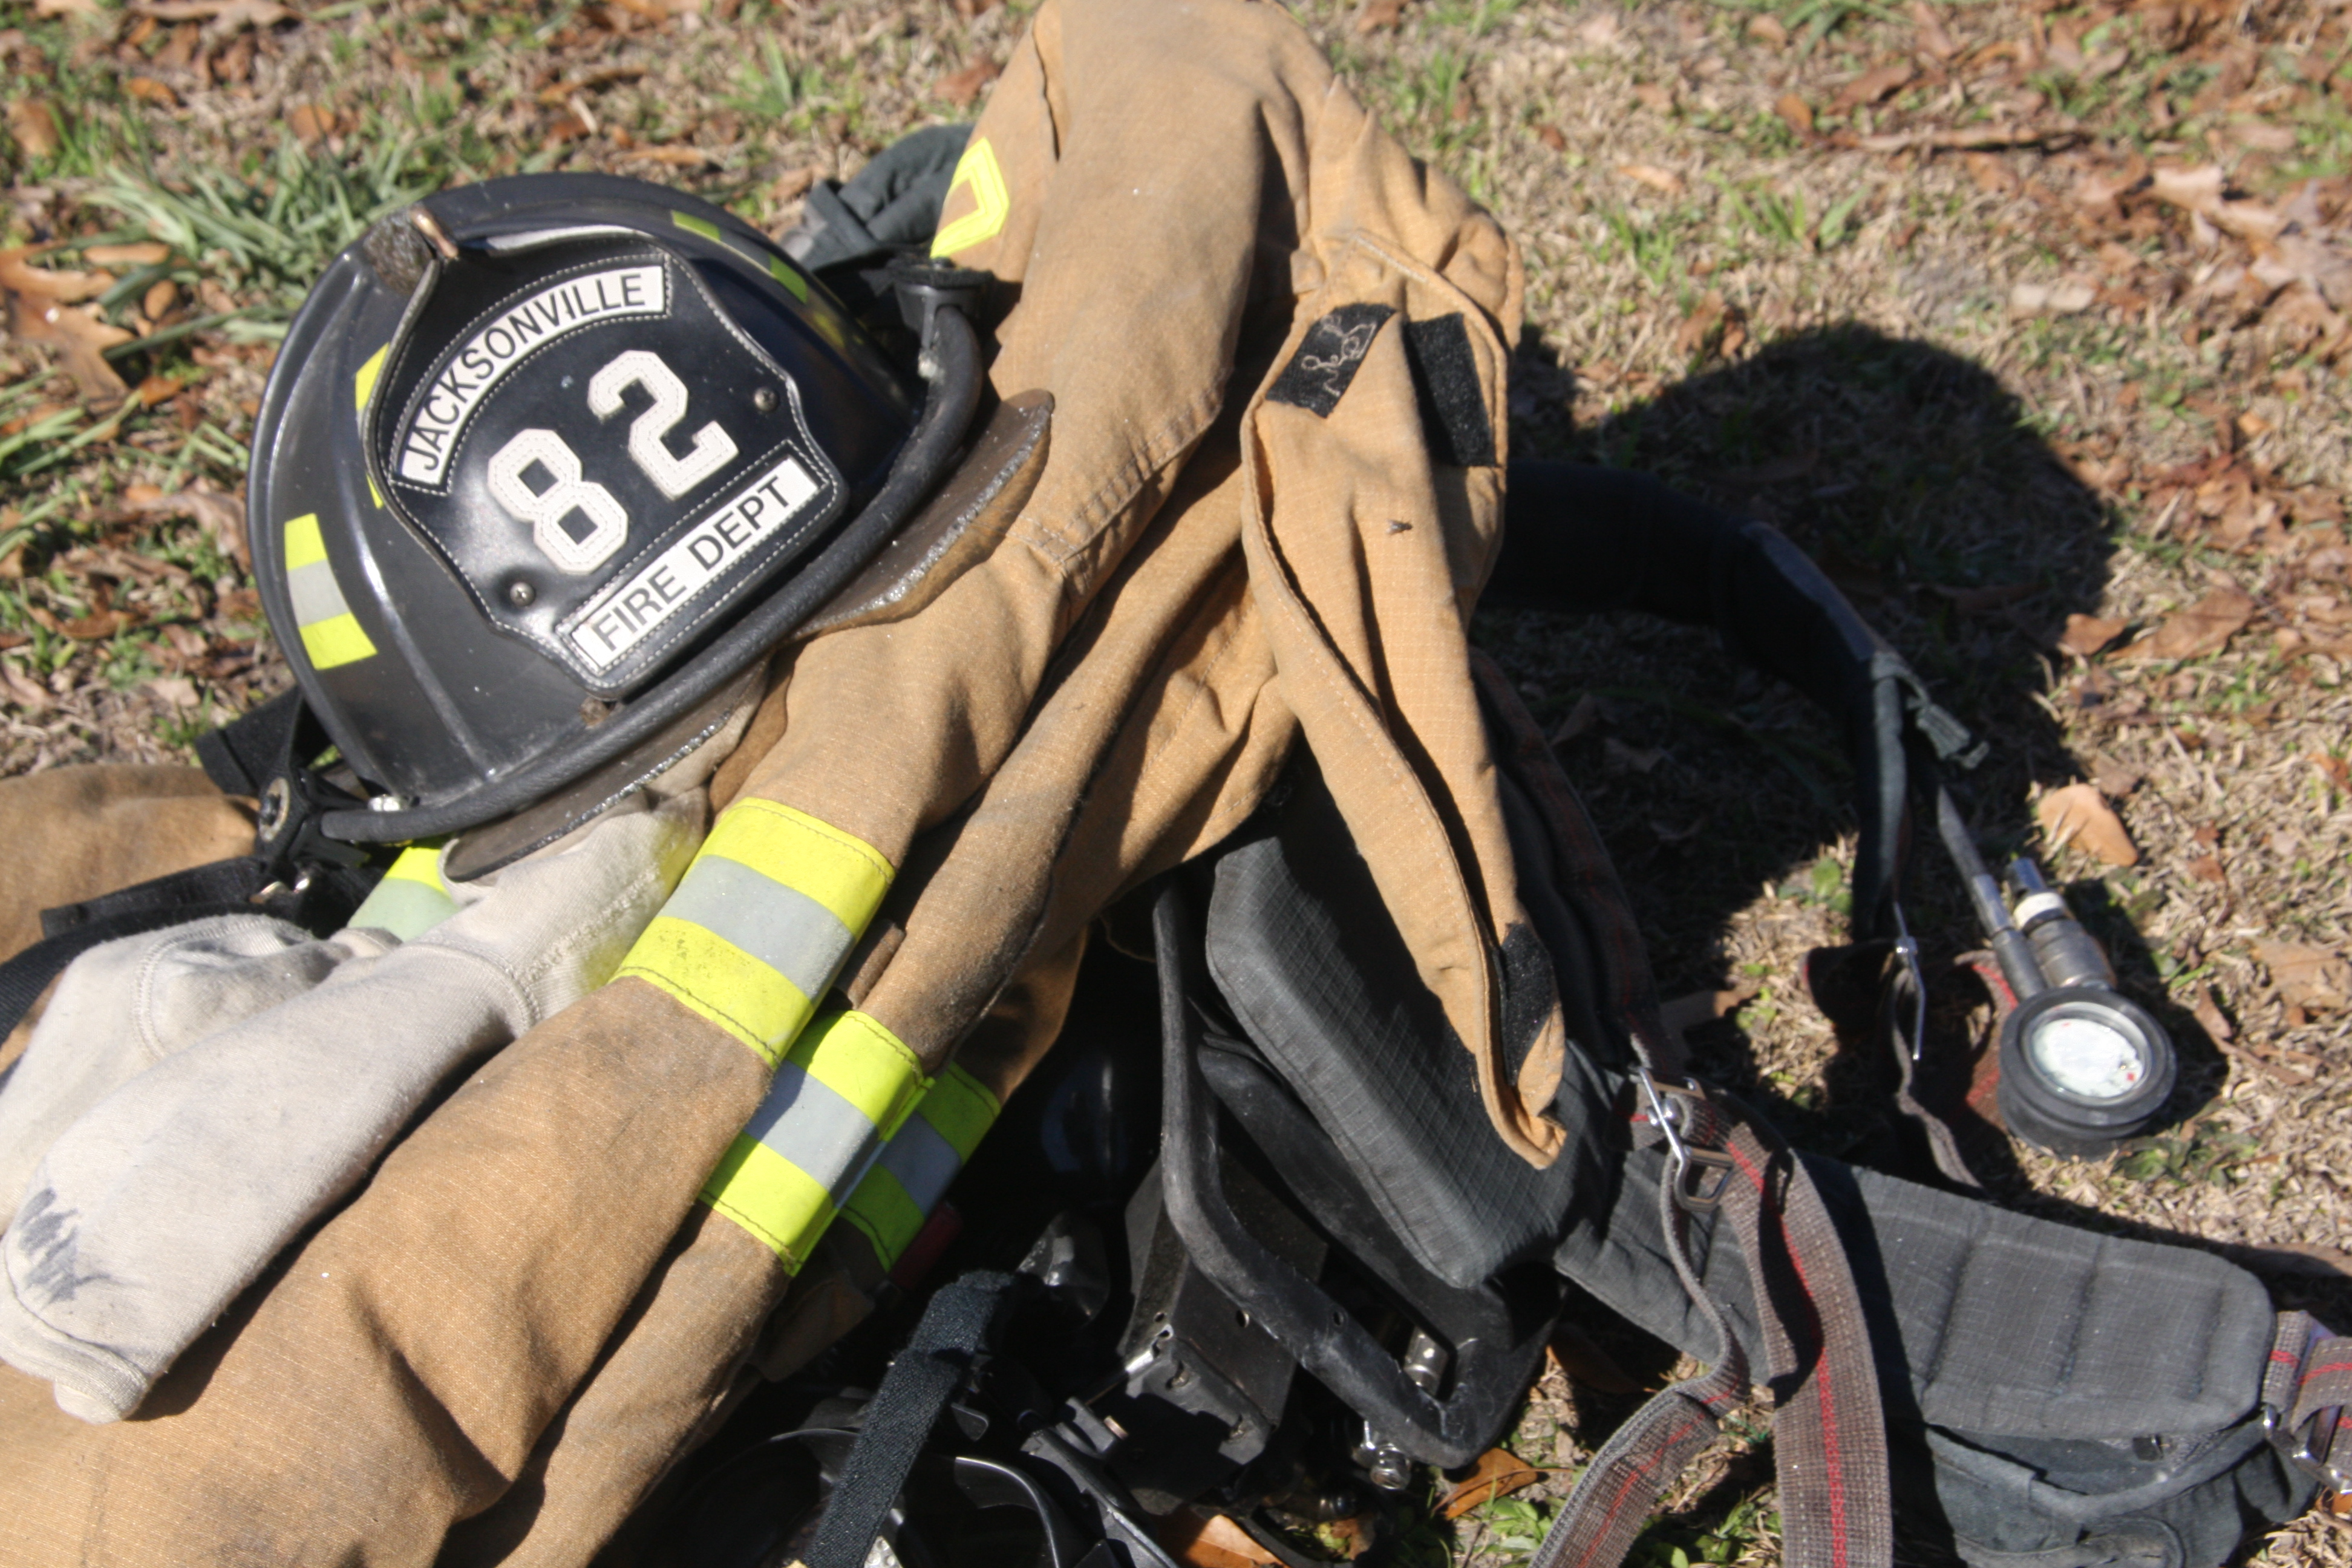 Jacksonville Firefighter gear